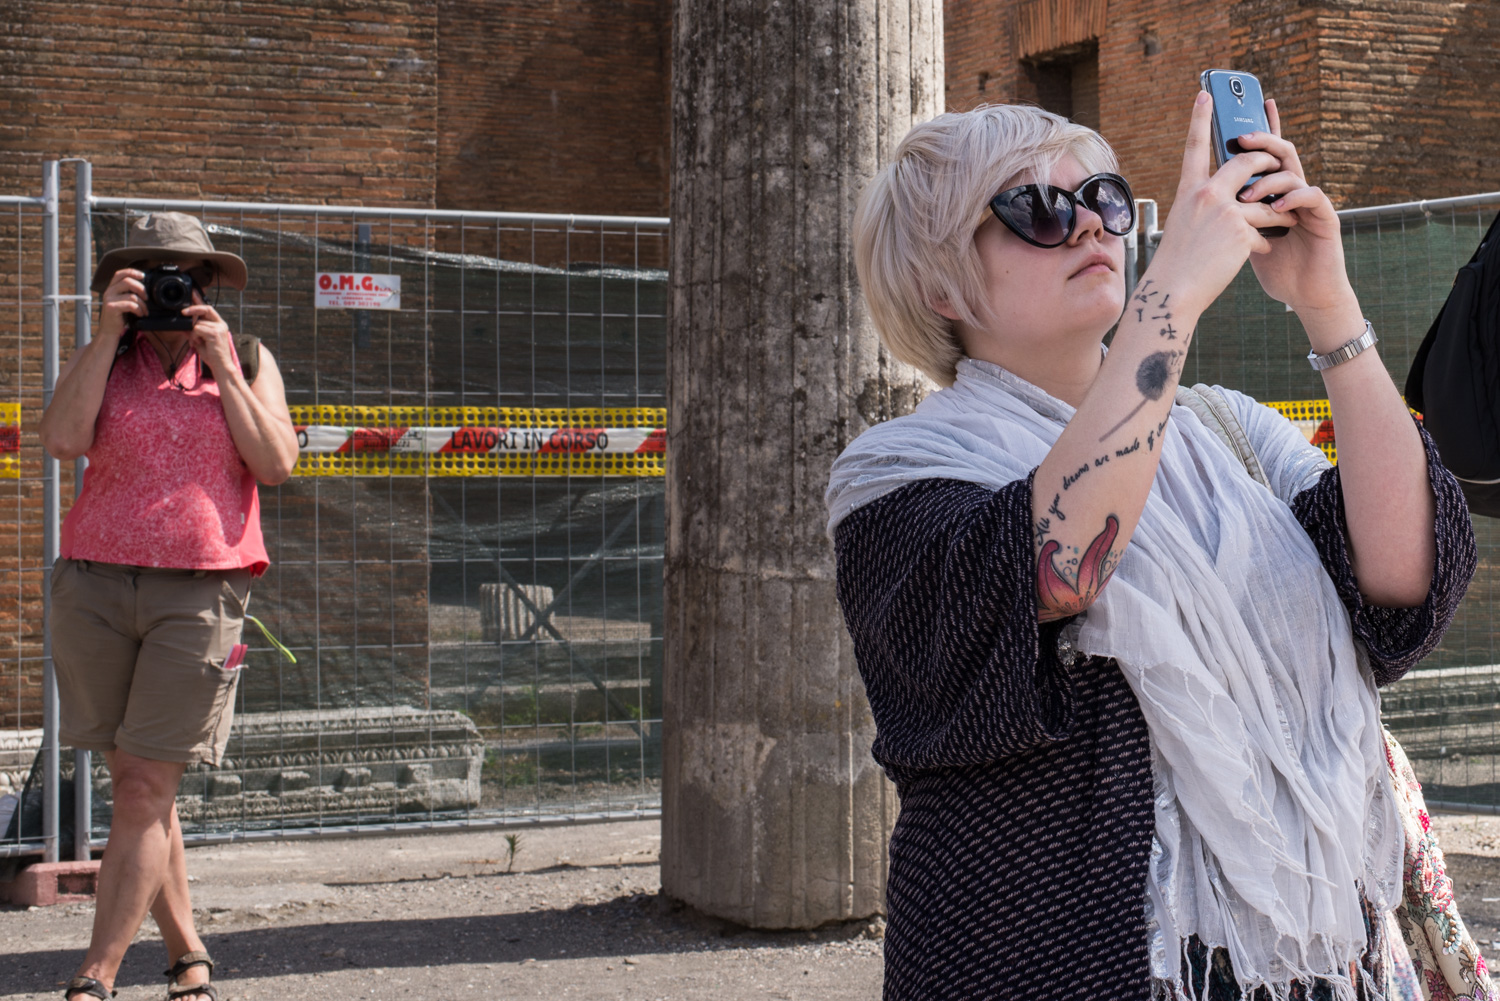 A woman taking a photo of woman taking a photo